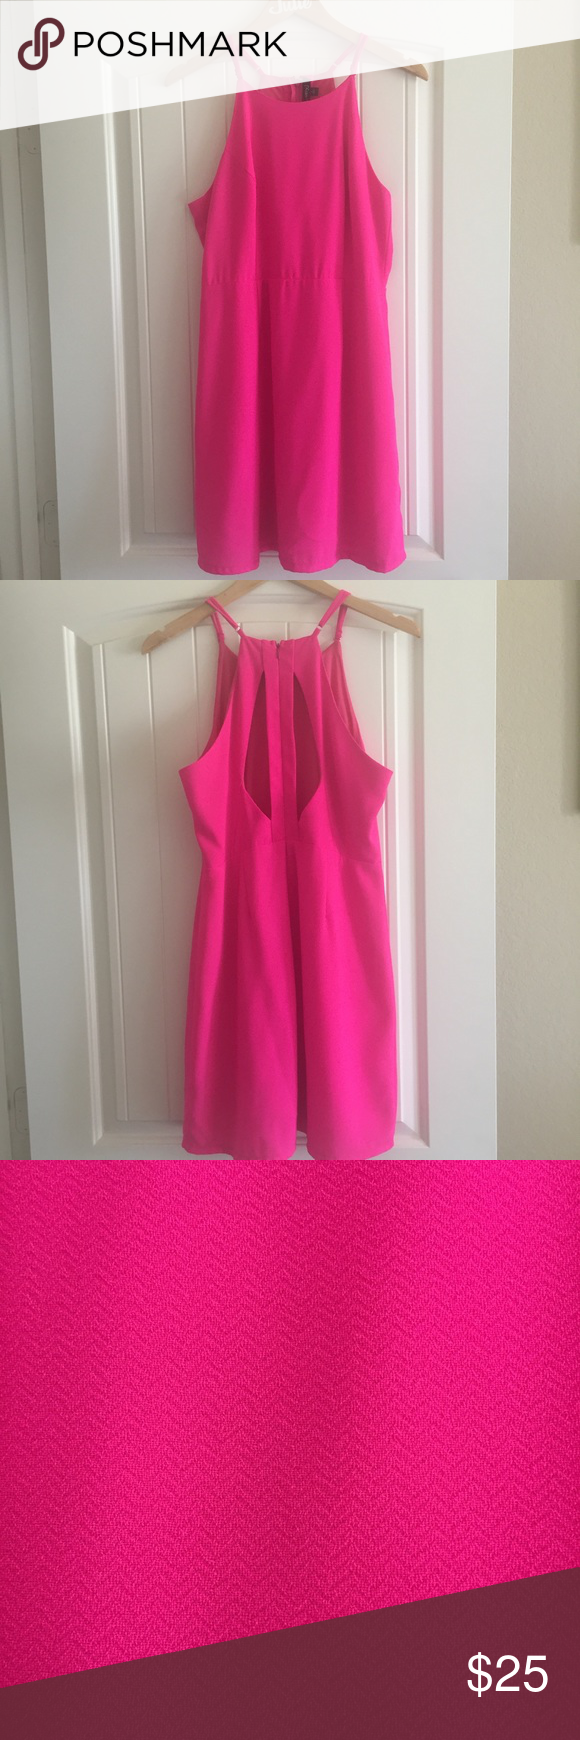 NWT Hot pink Dress Has adjustable straps, pattern is solid pink with a zig zag design, keyhole cutouts on the back, would be great for a summer wedding Very J Dresses Midi